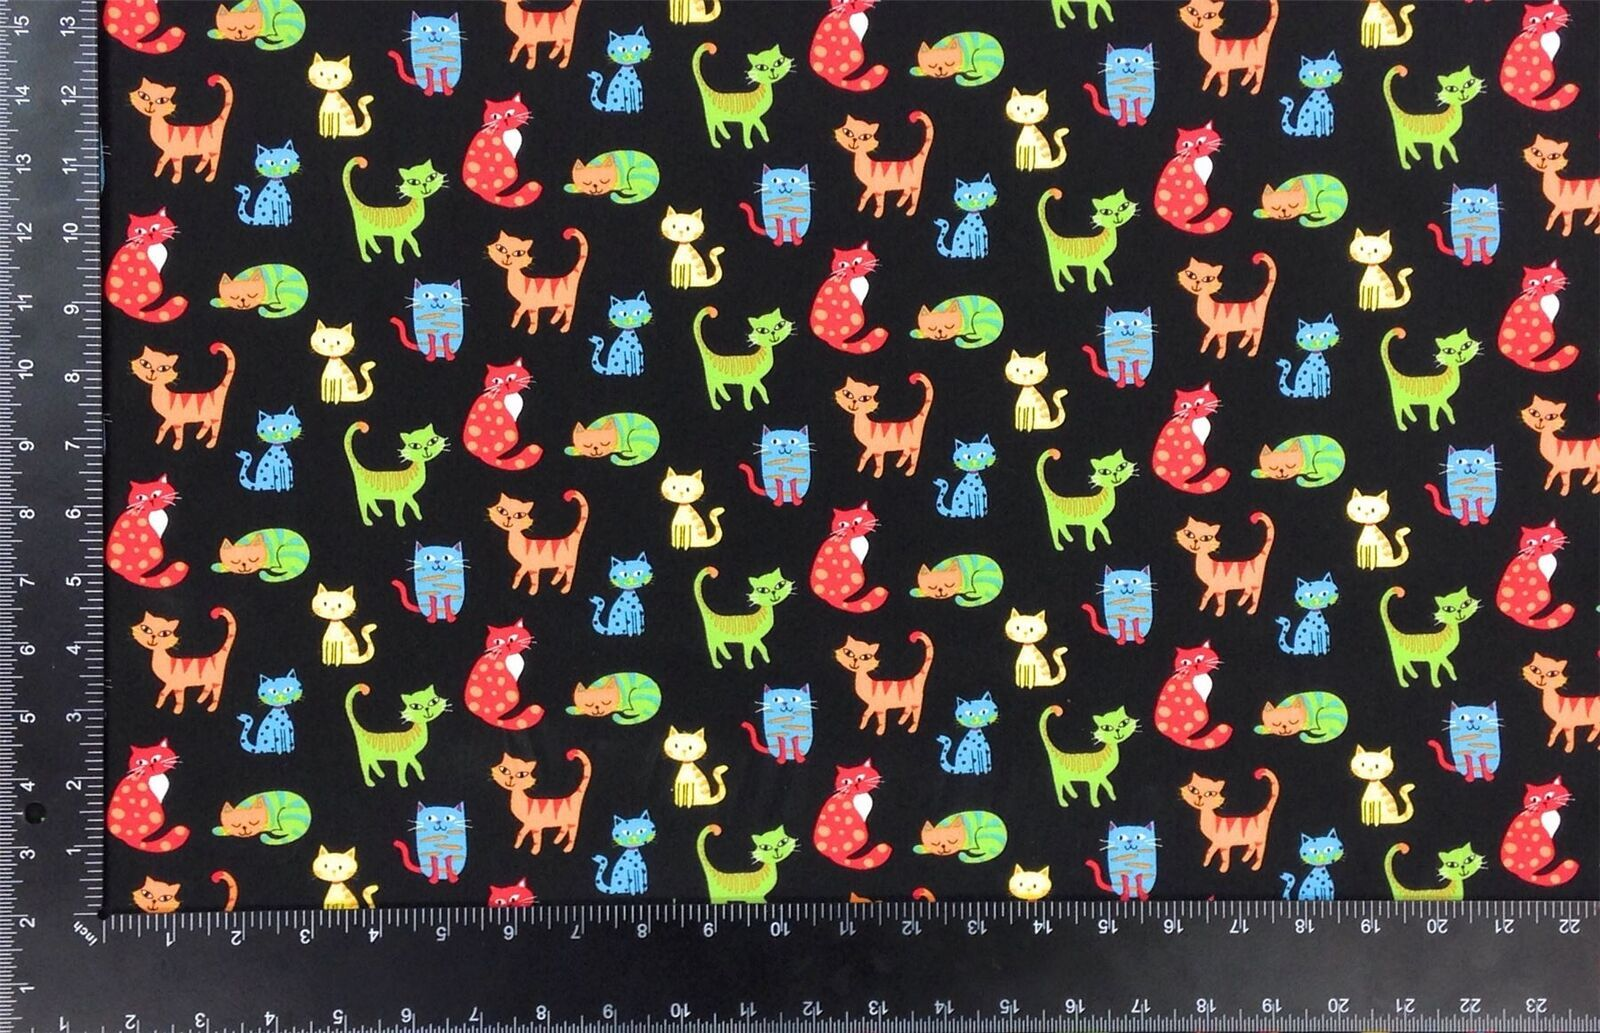 Happy Paws Cats Multi Black 100% Cotton High Quality Fabric Material 3 Sizes